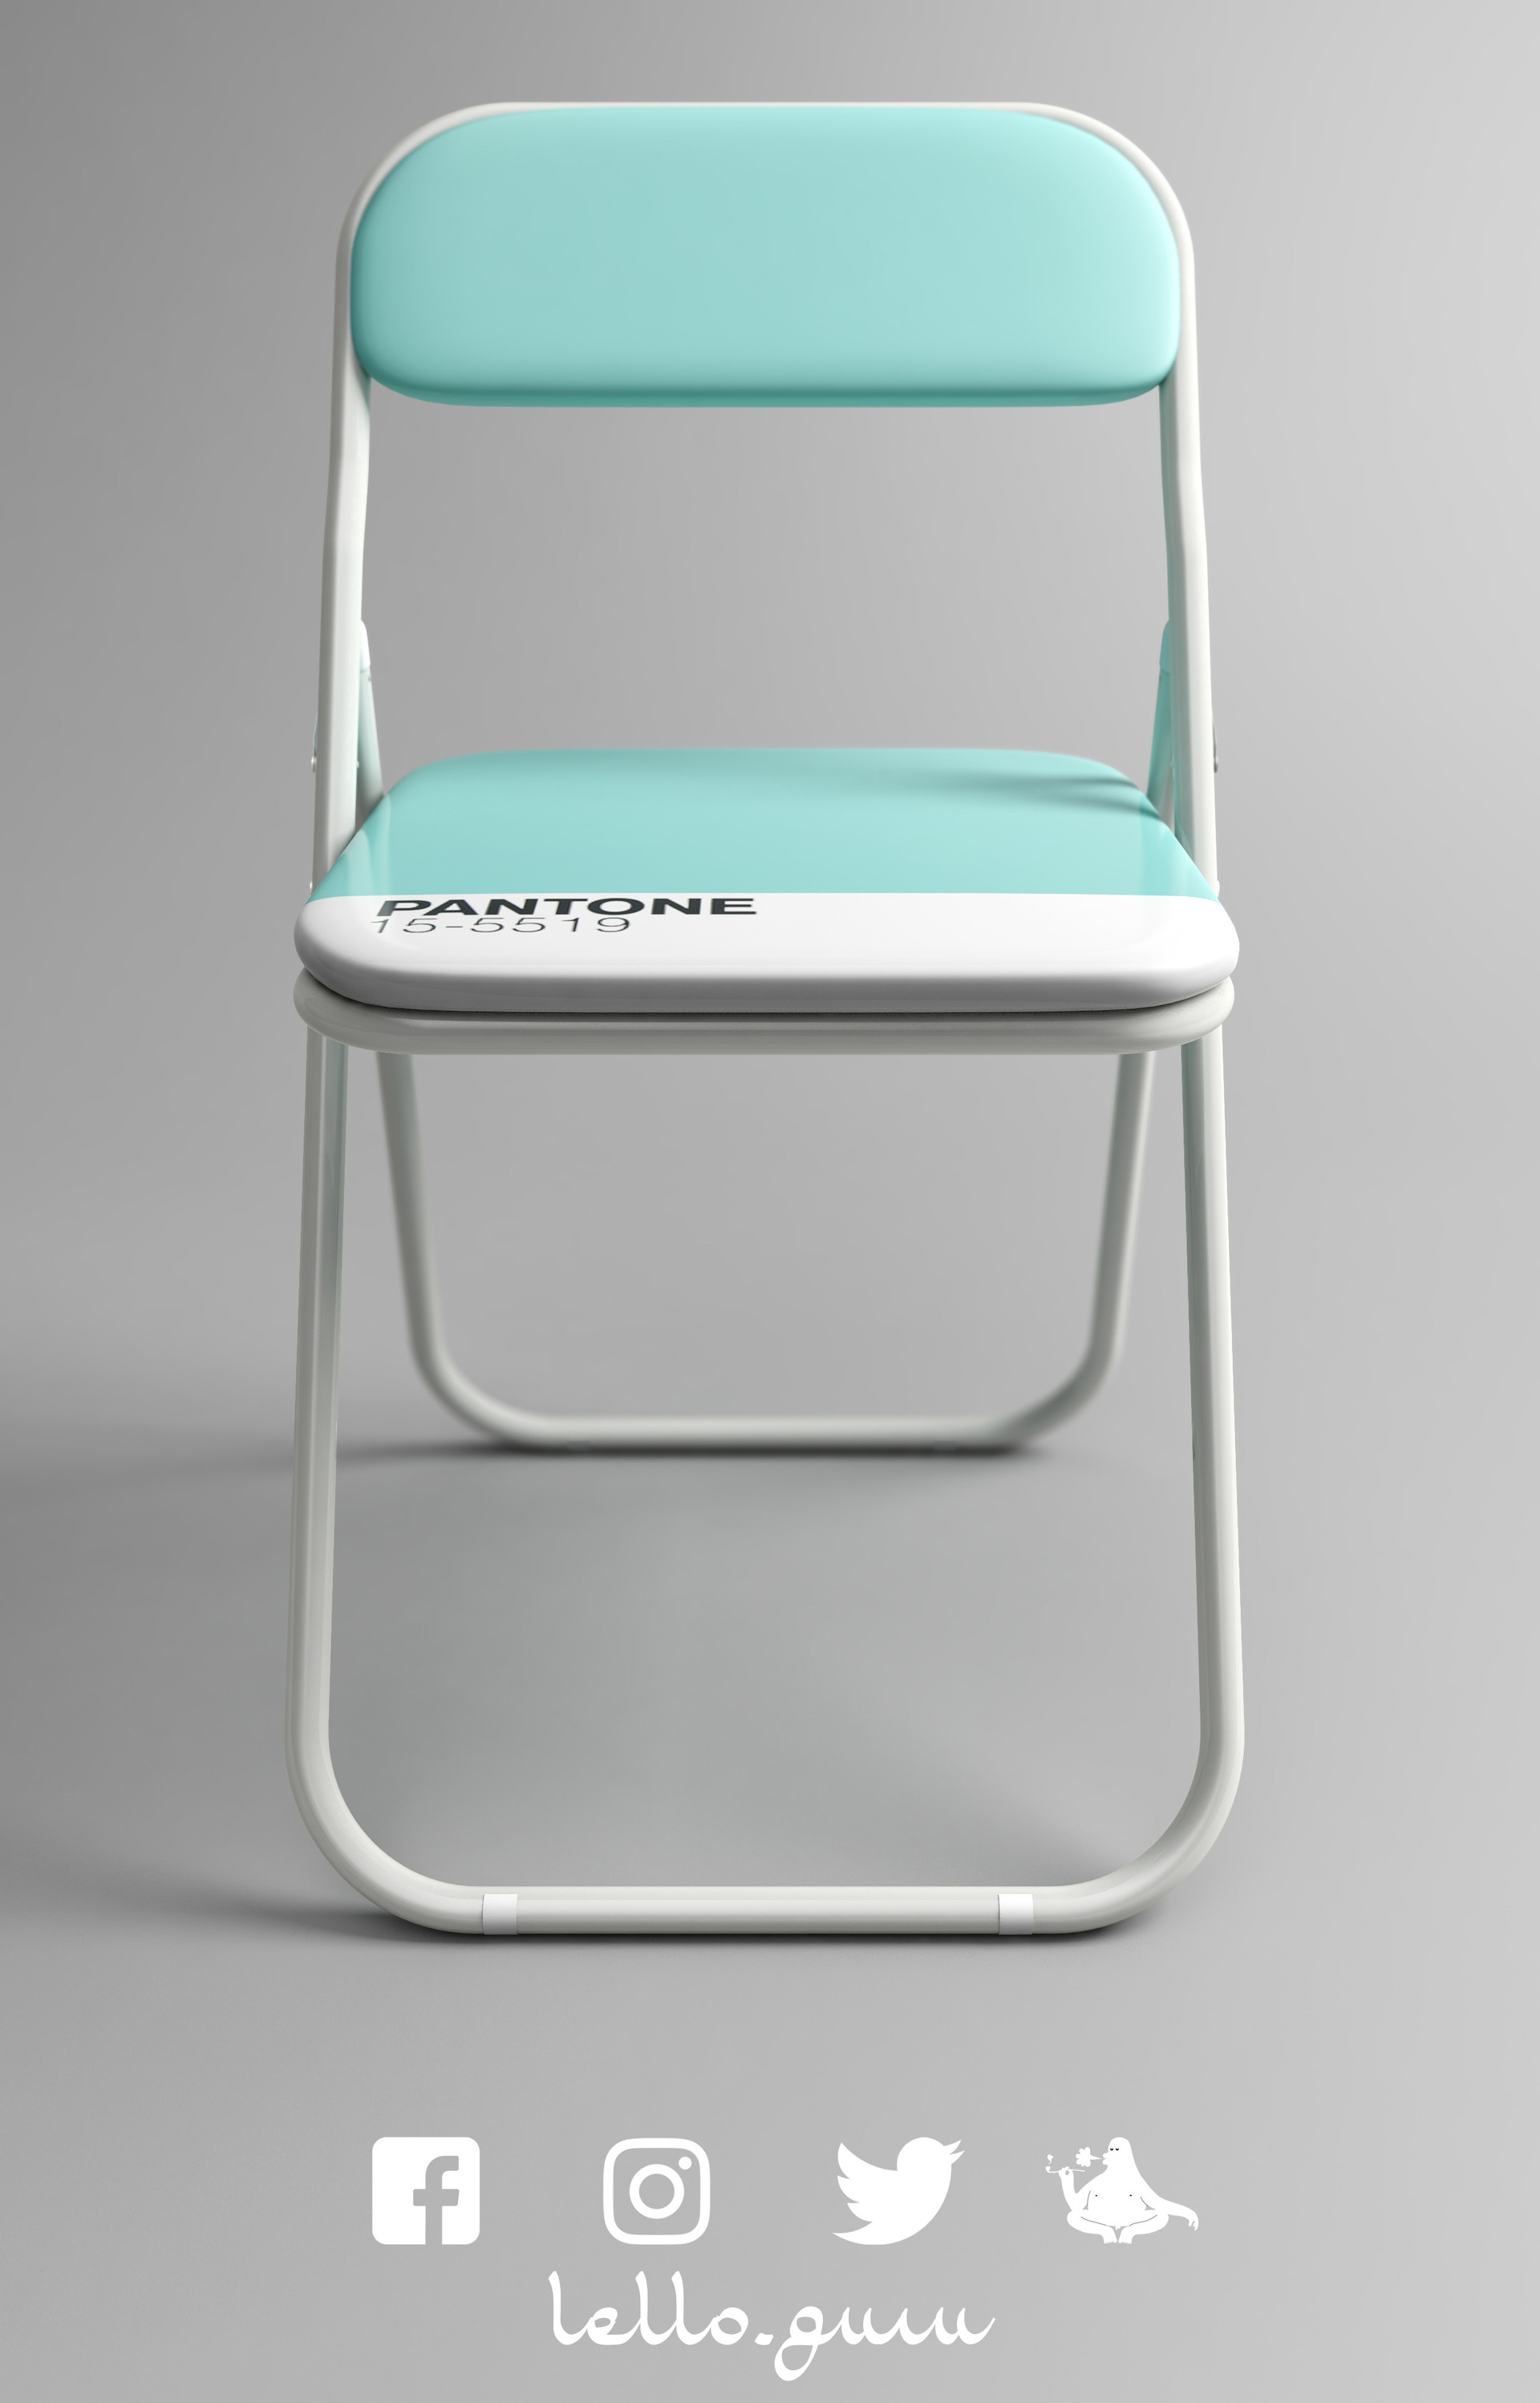 Marcello Ganzerli Pantone Chair Concept